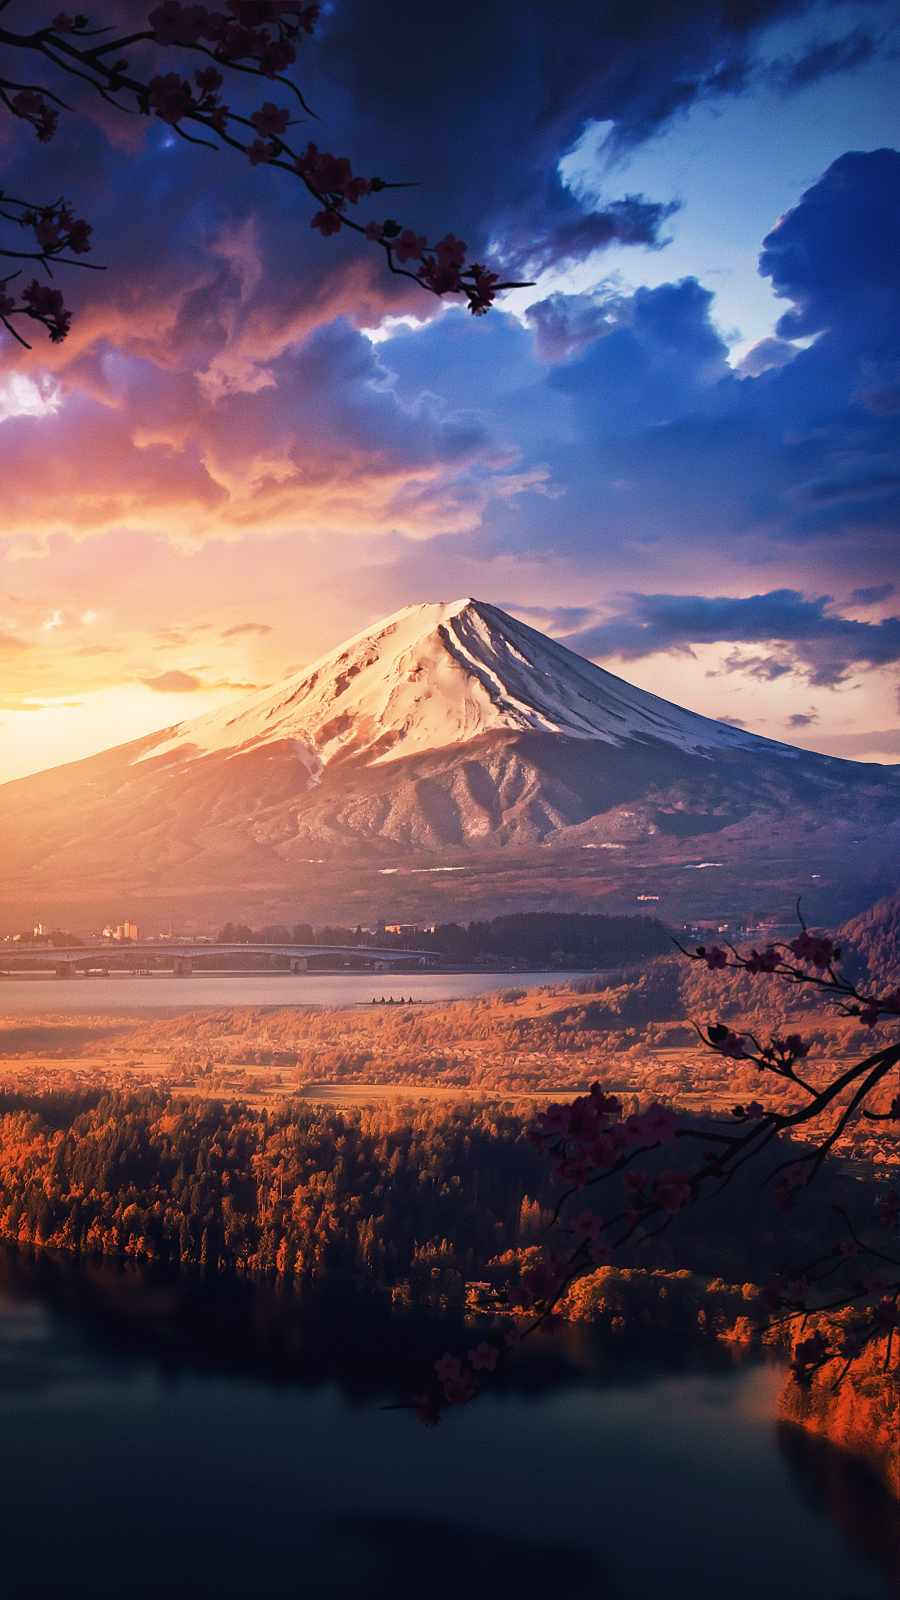 Mountain Volcano Sunset View